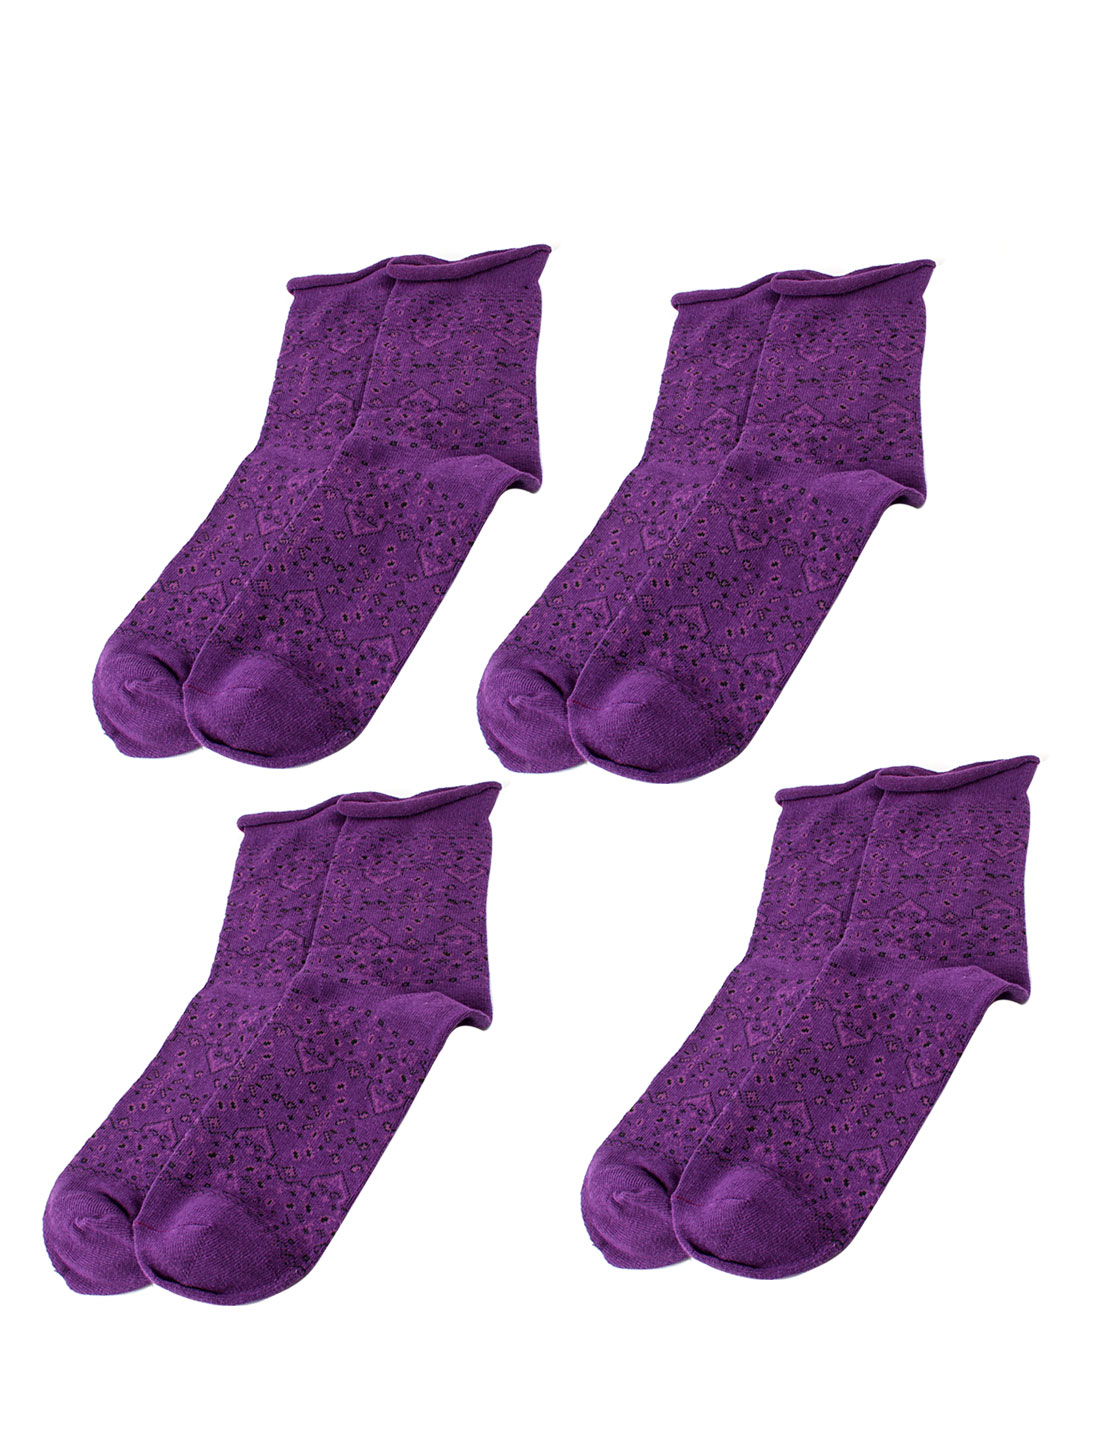 Woman Winter Fall Stretch Flower Pattern Crew Ankle High Sport Casual Socks Purple 4 Pairs